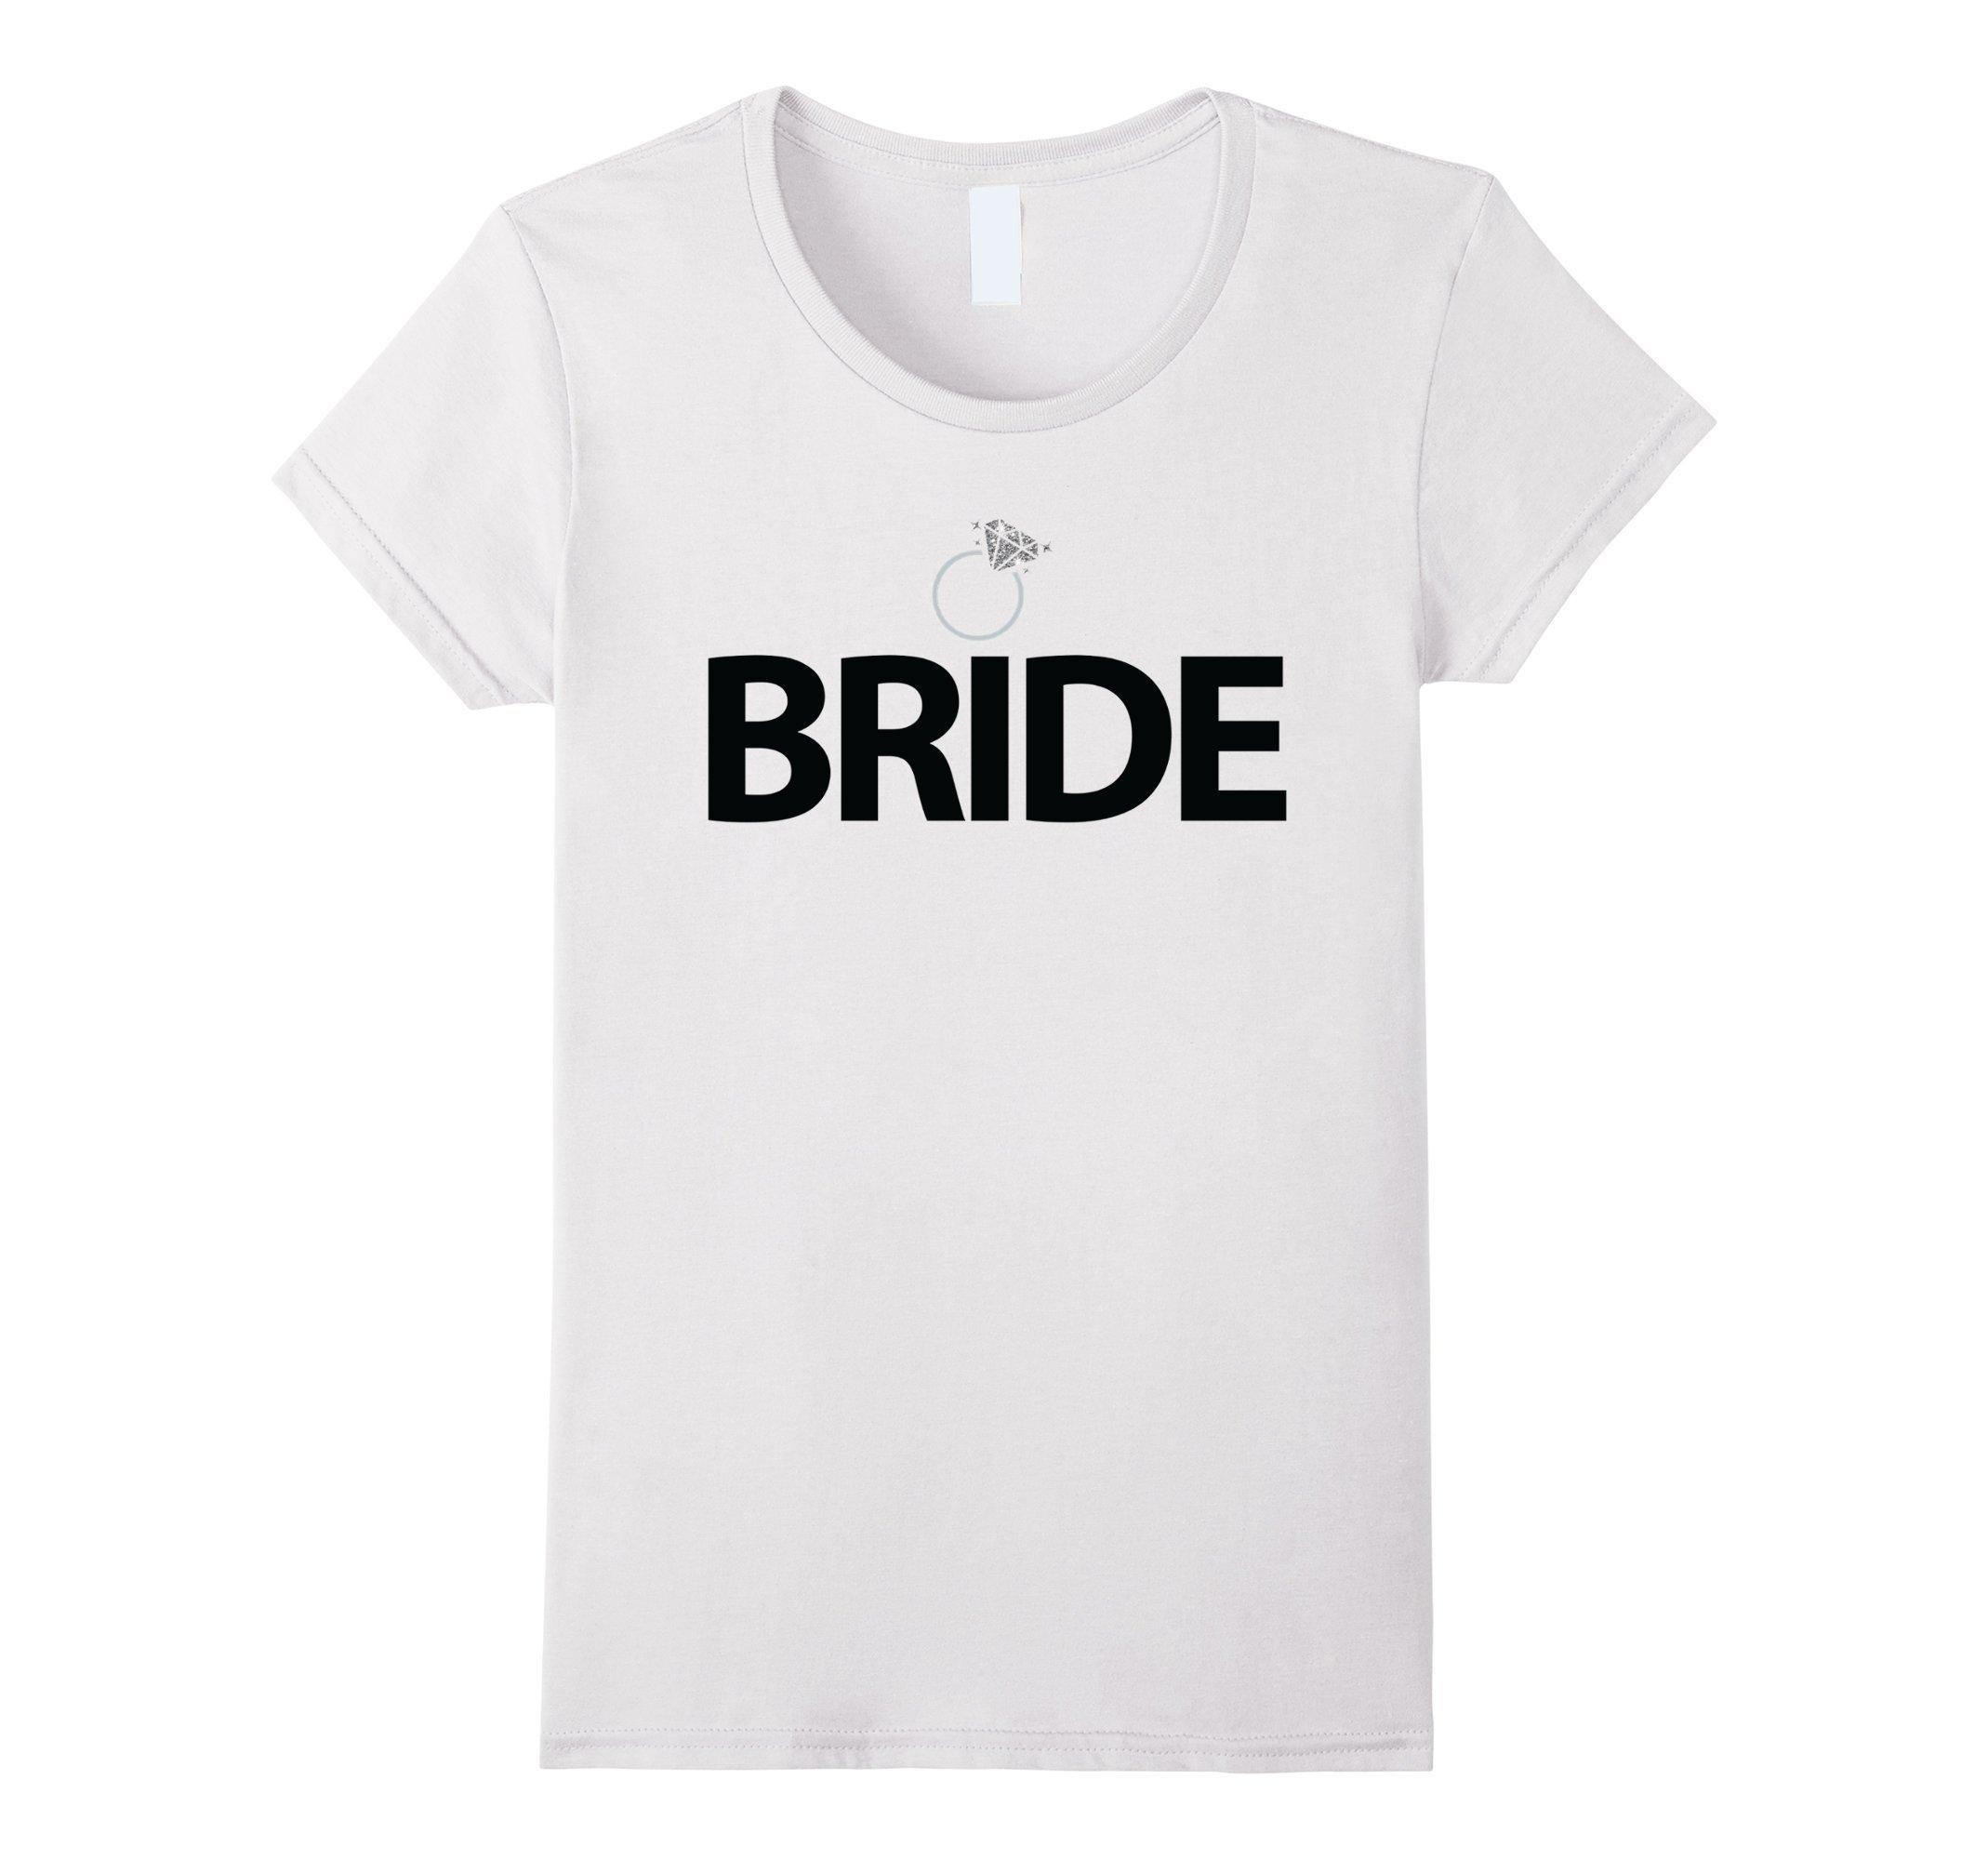 Women's Bride Shirts With Ring White Bachelorette Party Shirts Small White